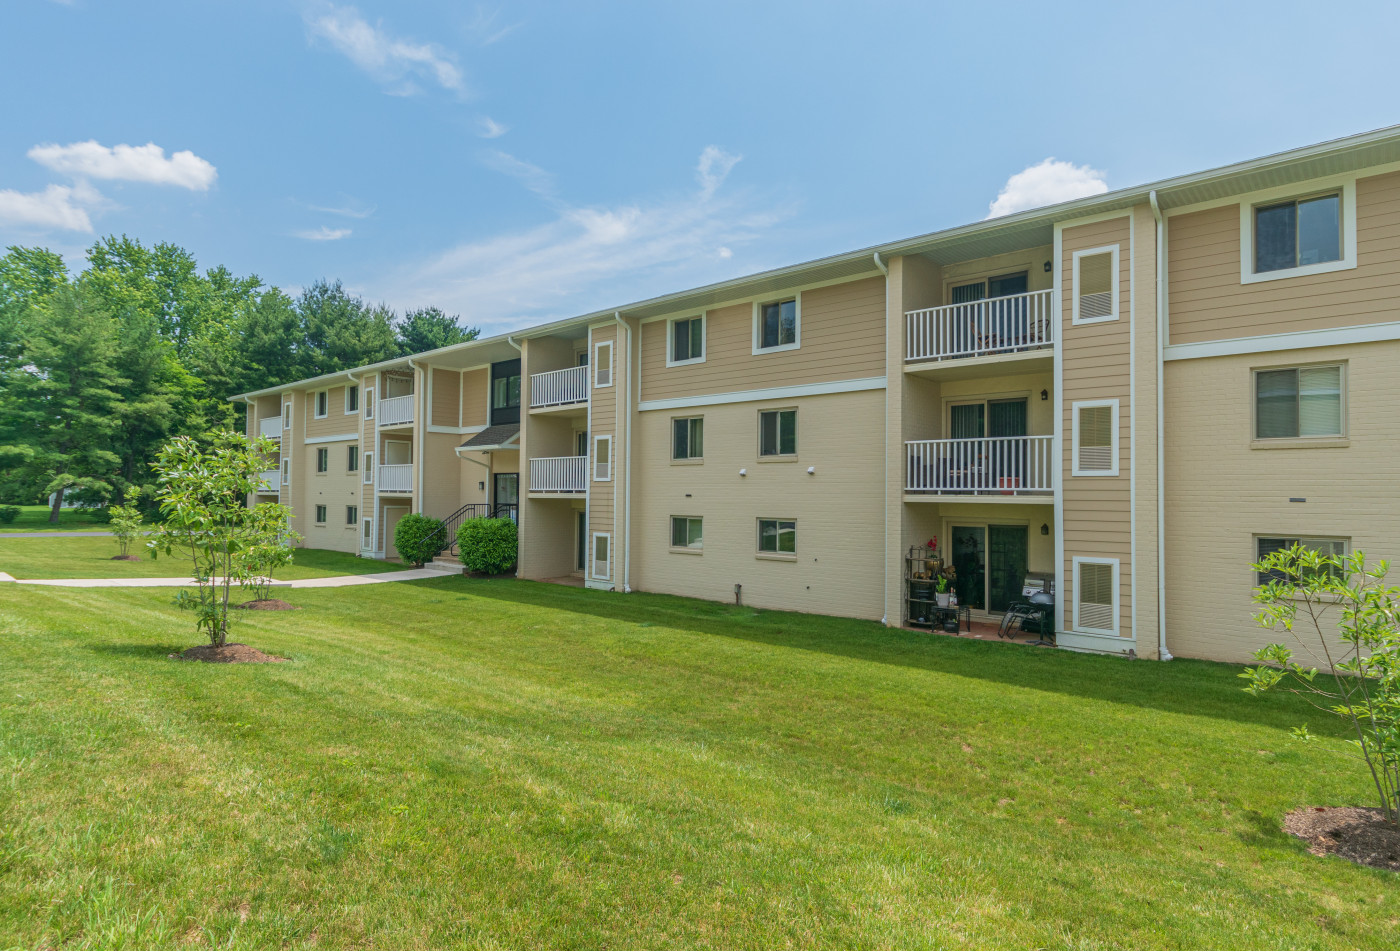 Pet Friendly Apartments in Downingtown Pa | Caln East Apartments